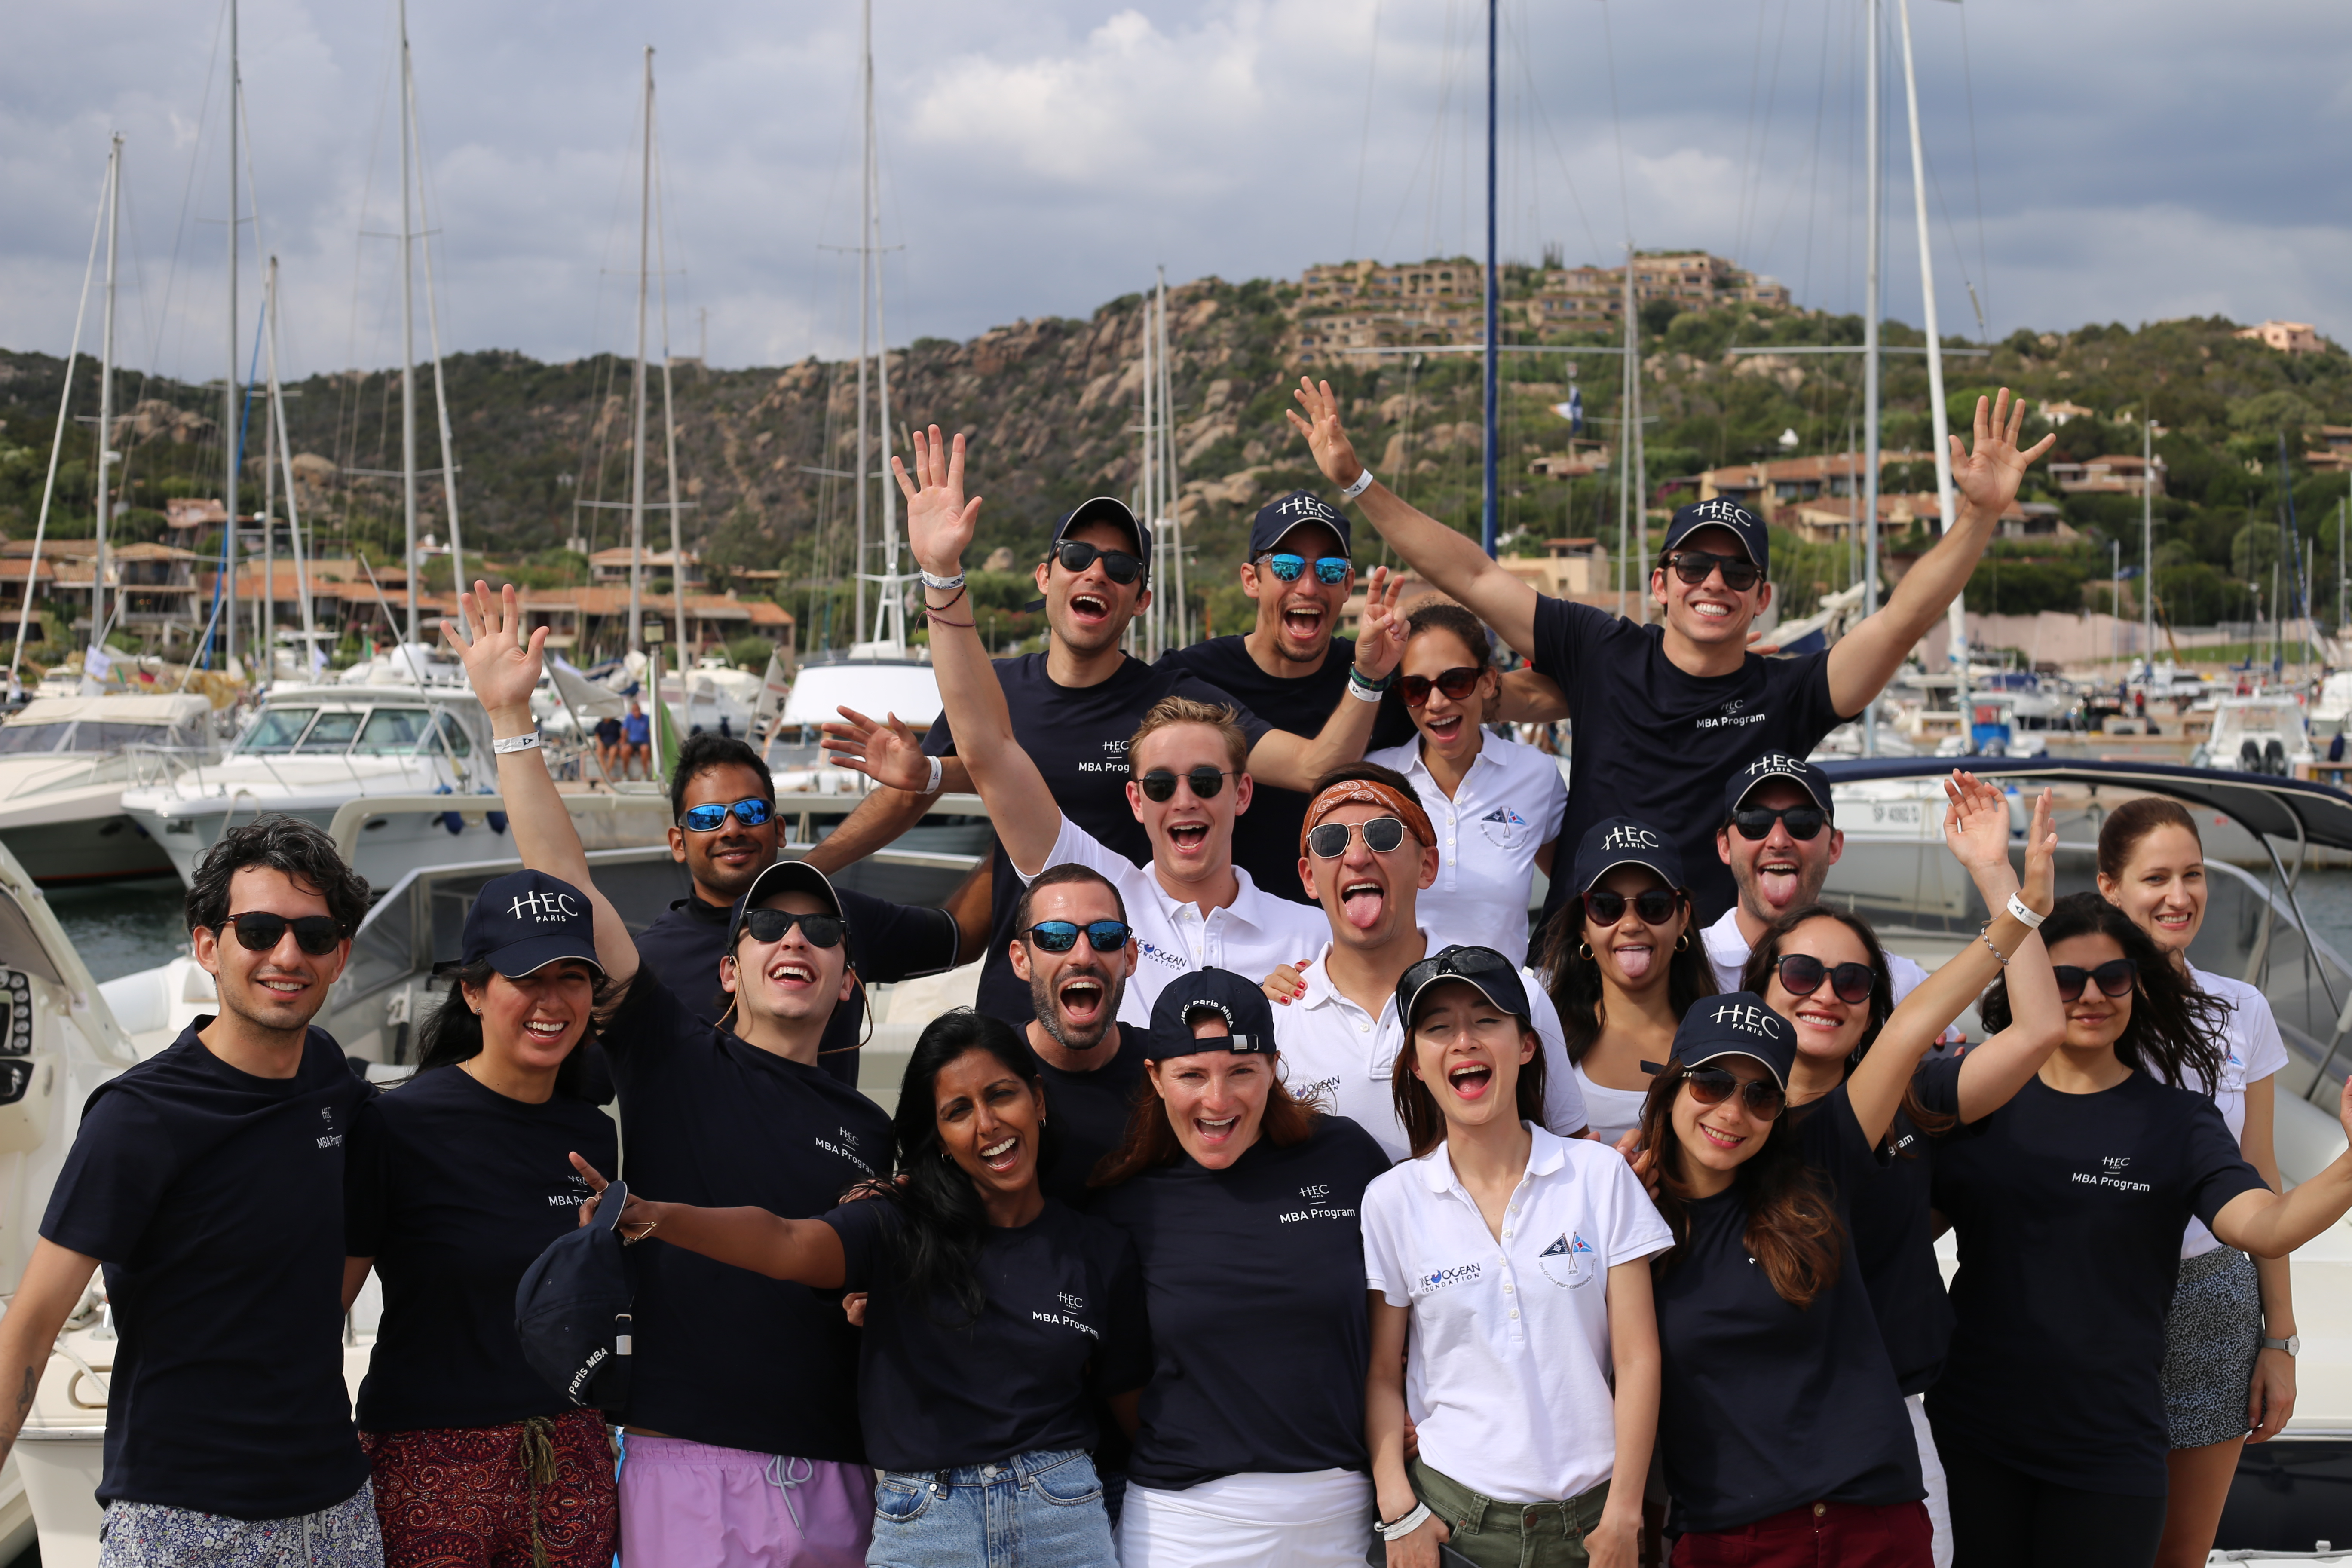 19 students and one HEC Paris MBA alumnus competing in the regatta